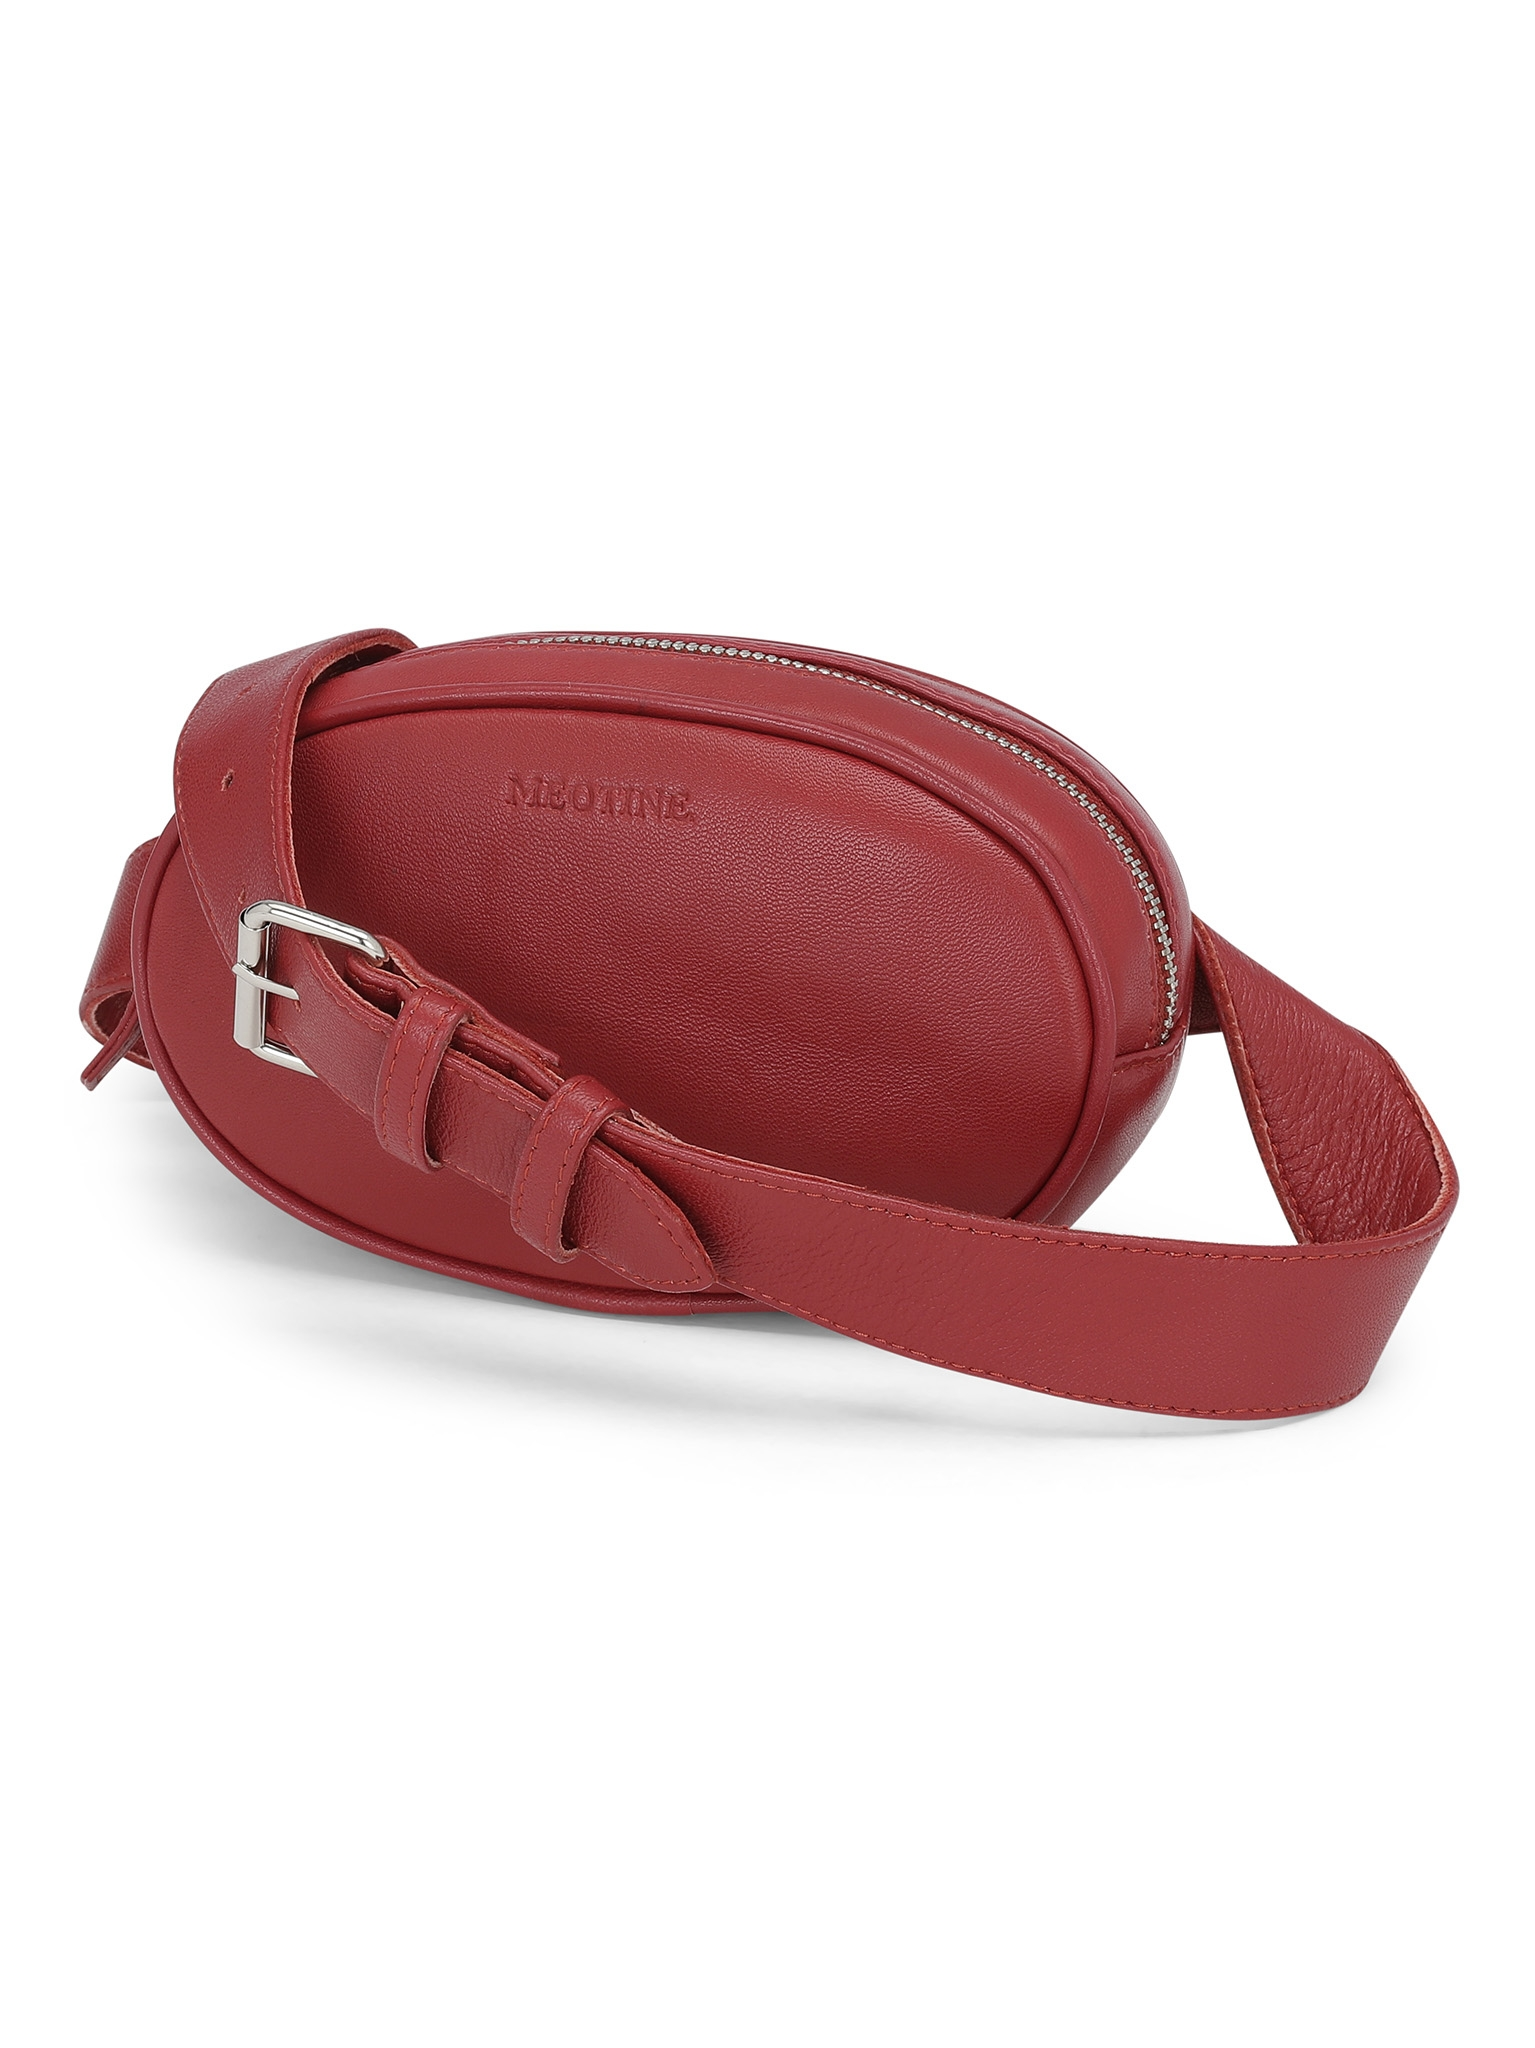 Billede af Meotine Leather Bum Bag, Red